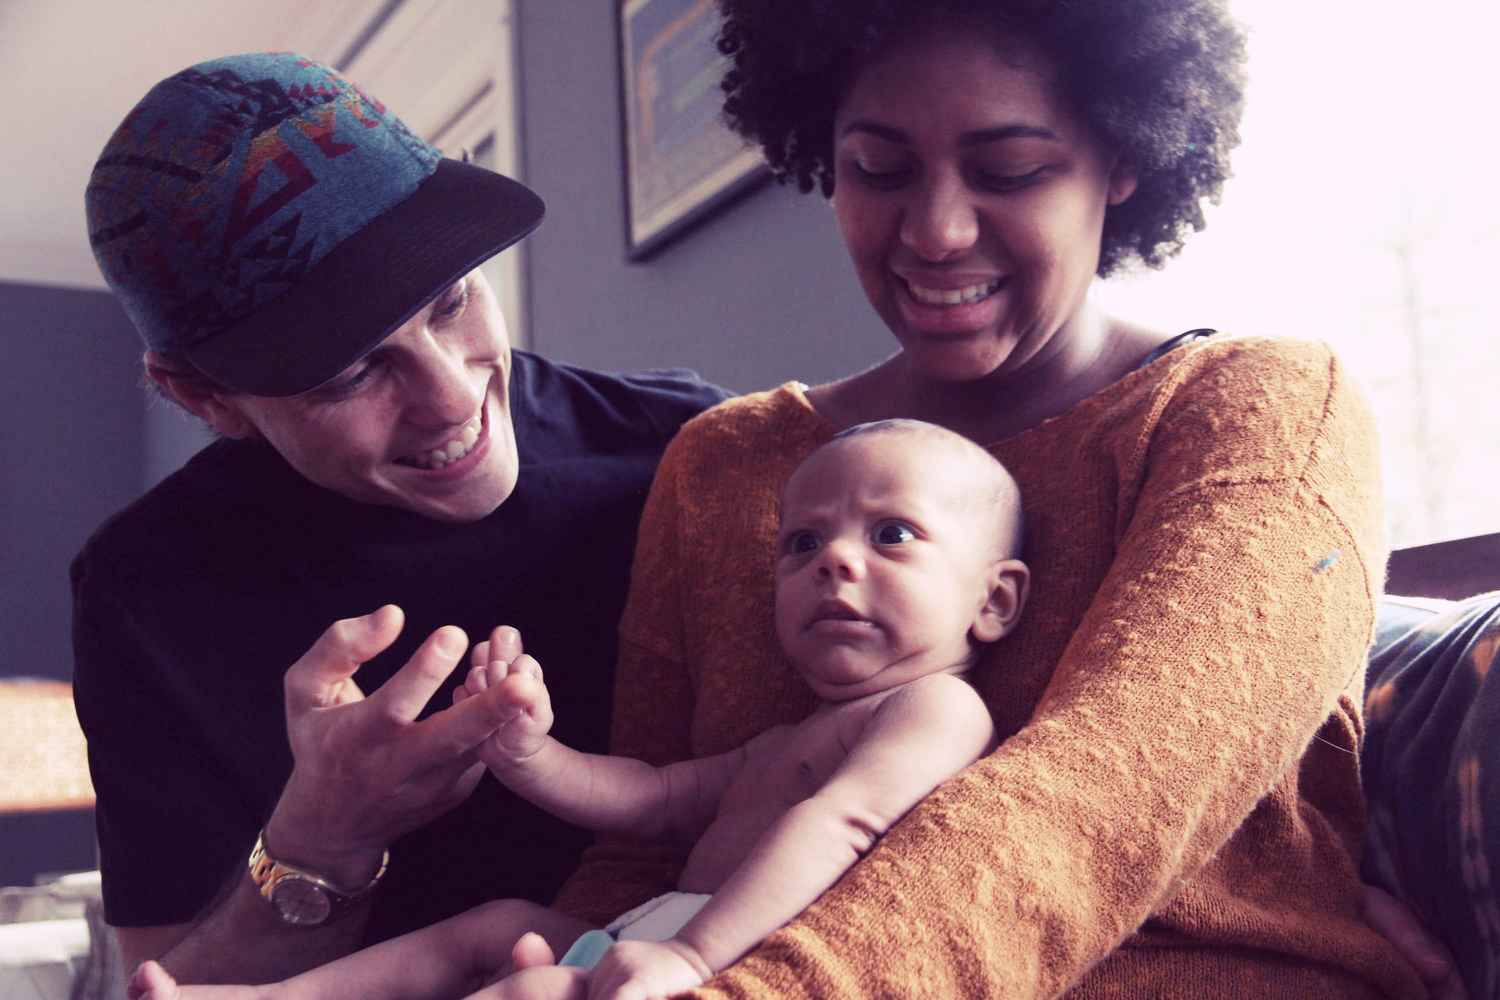 """""""...how grateful I am for the loving support of the Bridgetown Baby team. Our son is getting to know us as our best selves."""" - Camilla M. (Photo credit: Brita Johnson)"""